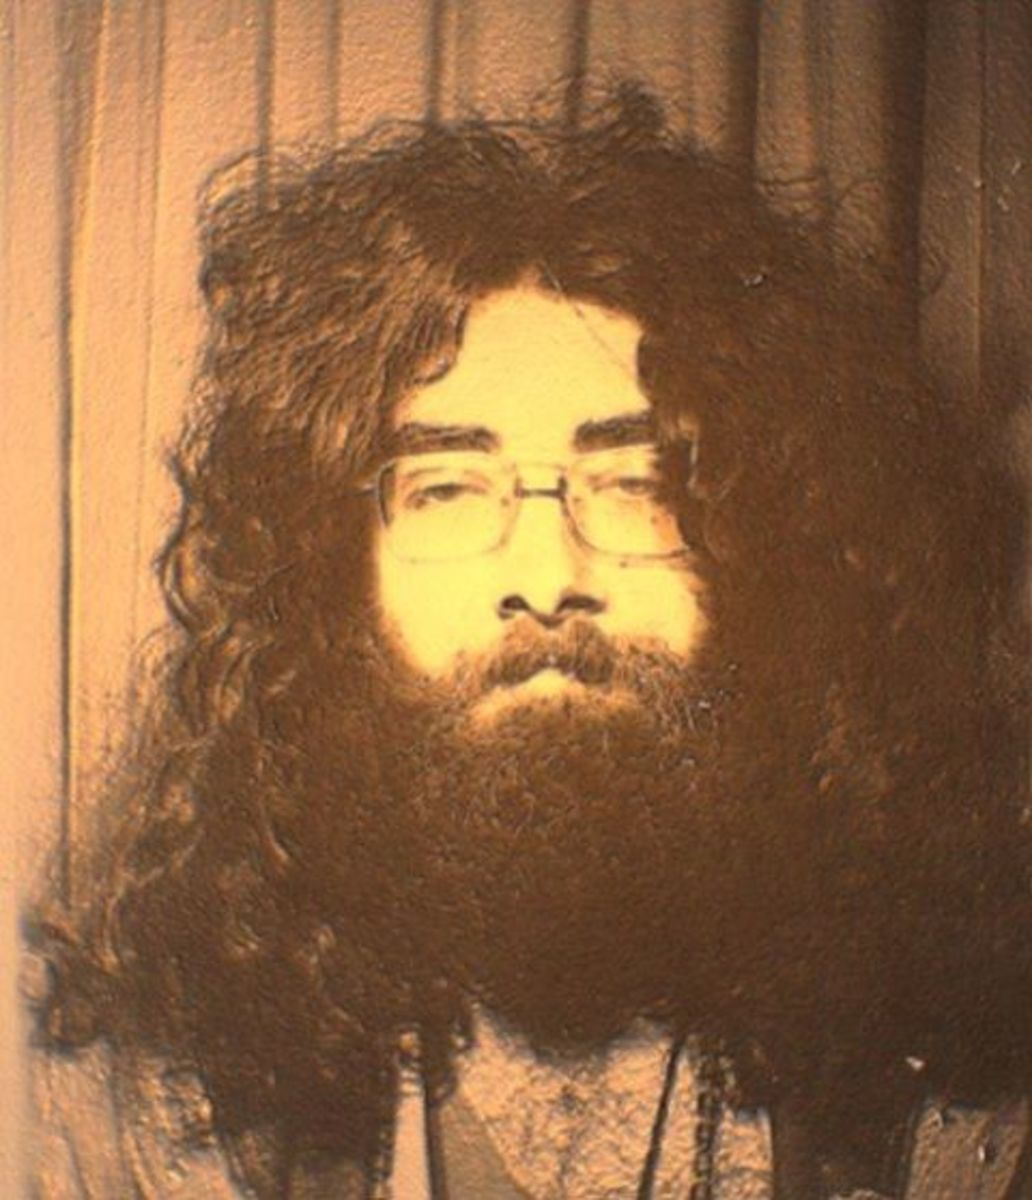 """Steve in 1972, during the Stompin' era, when he was known as """"Droid""""."""